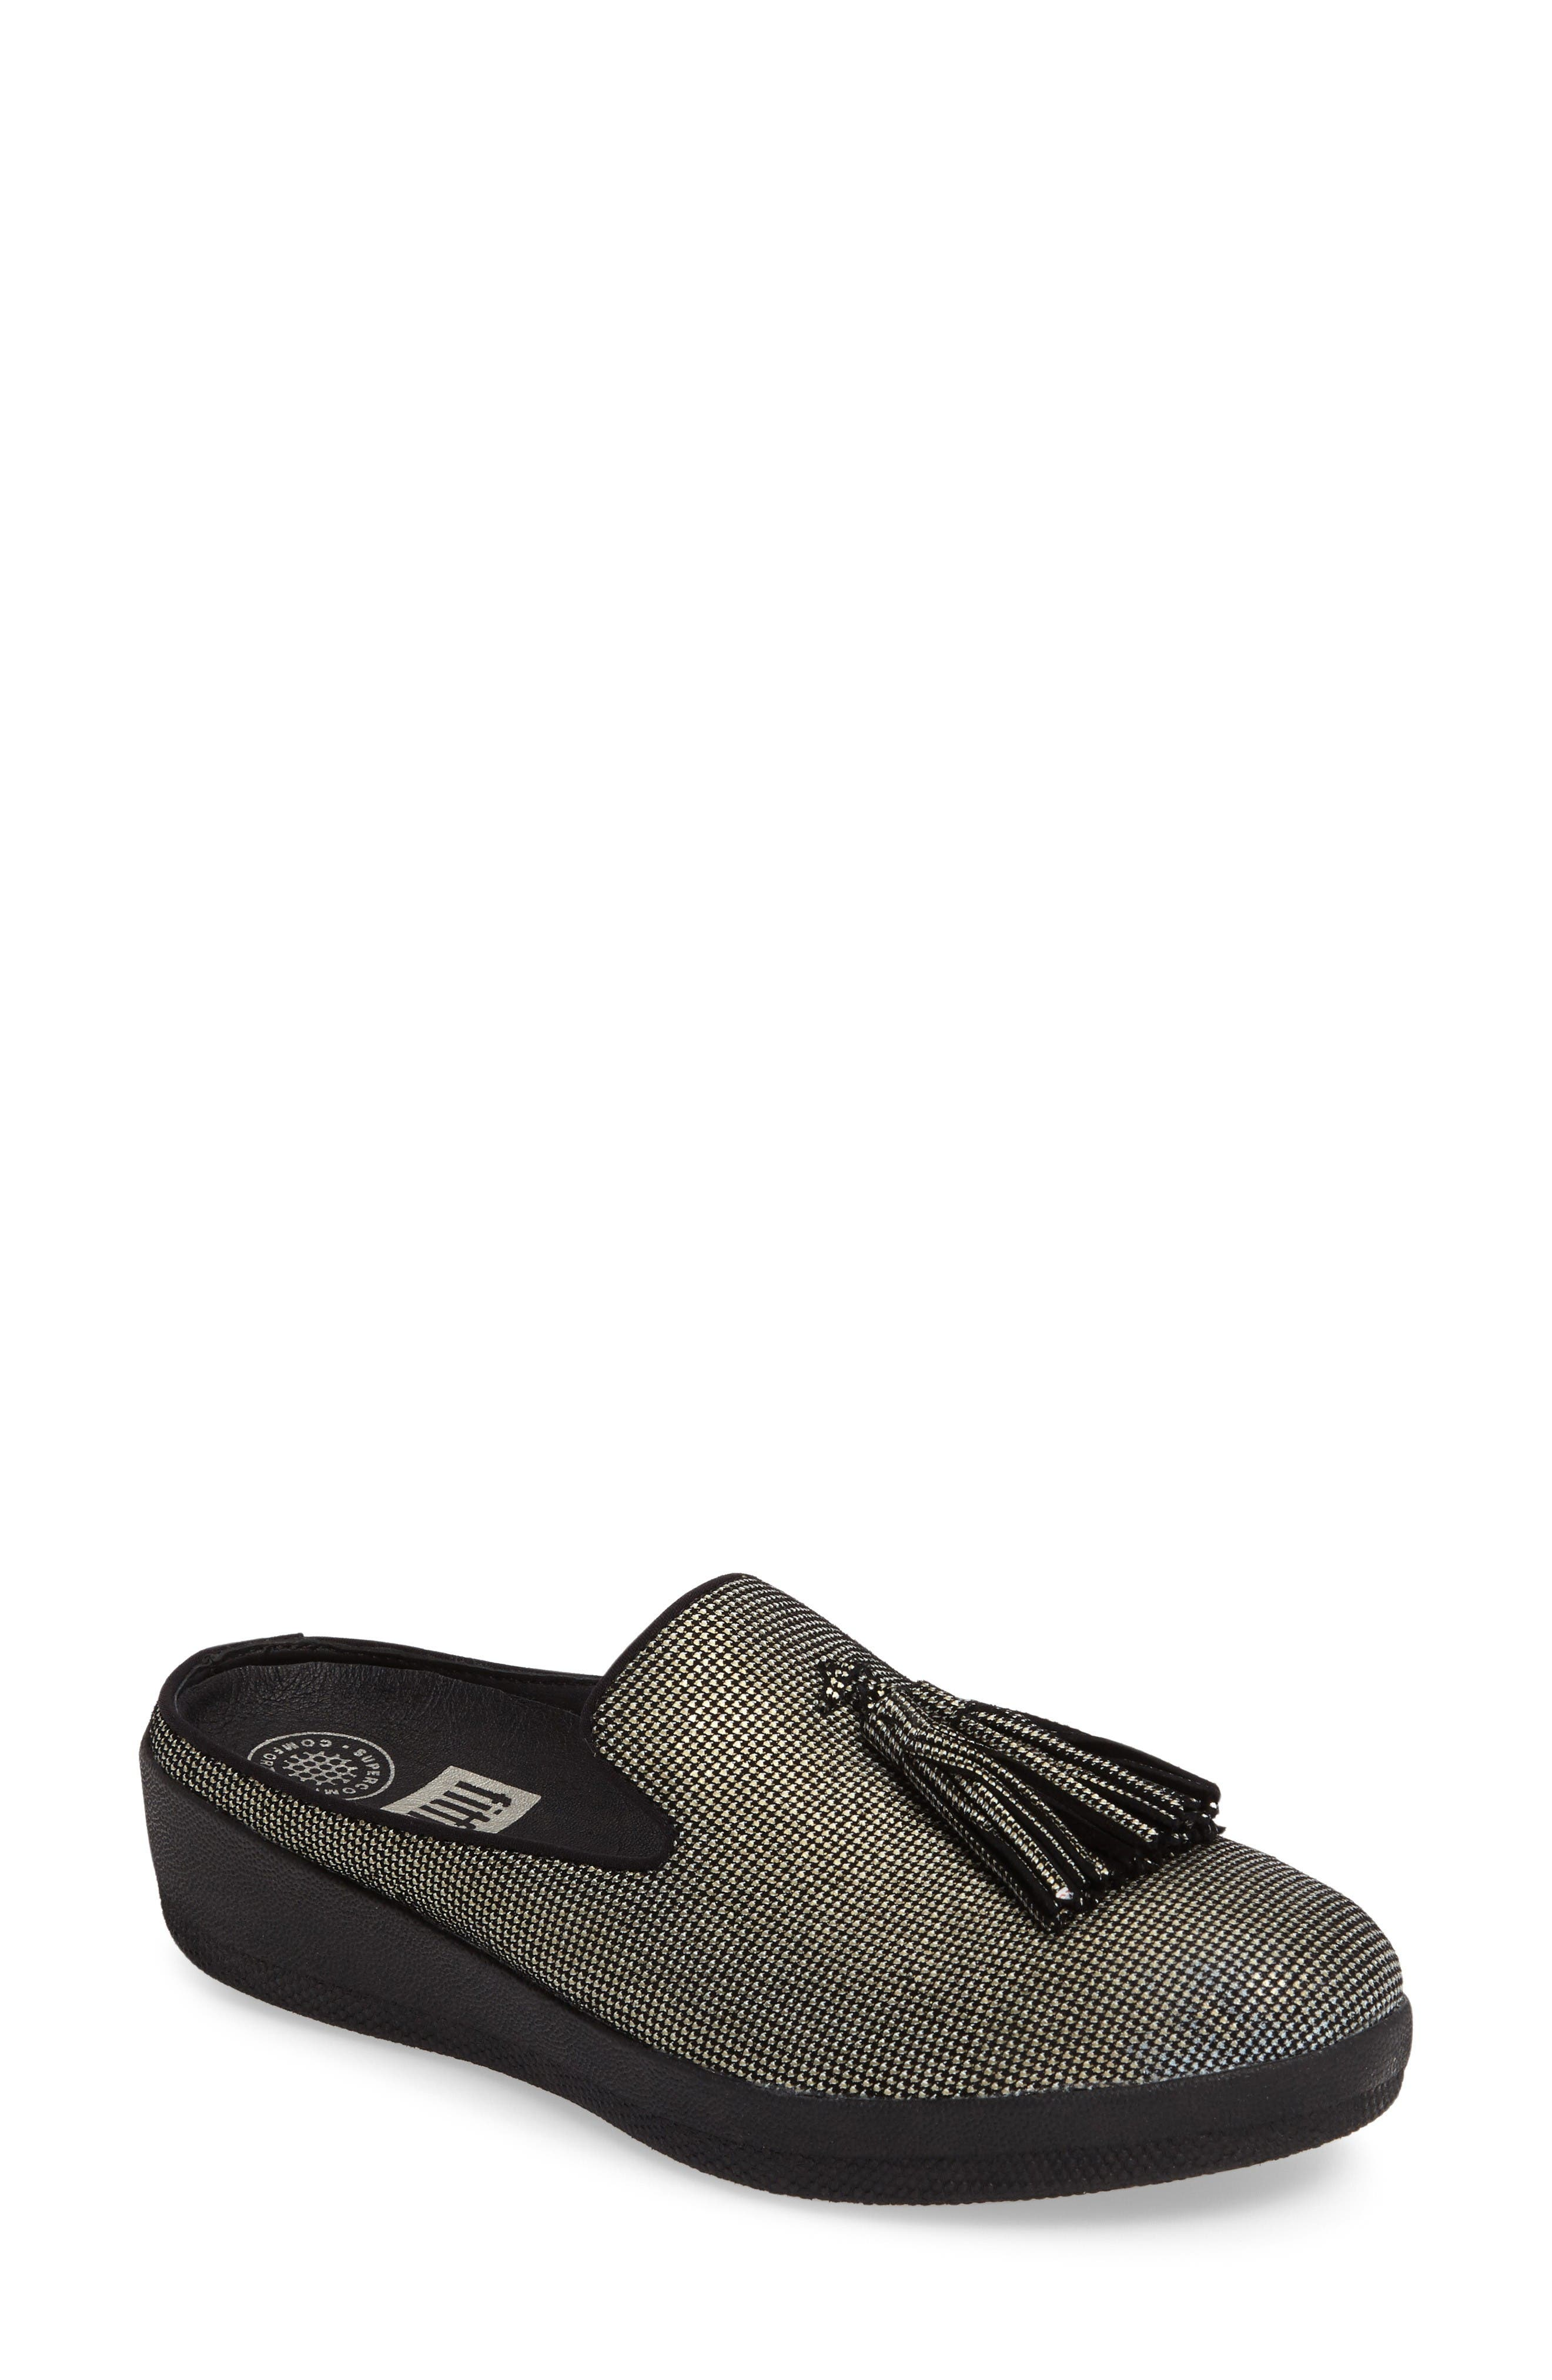 Fitflop™ Superskate Slip-On Sneaker (Women)